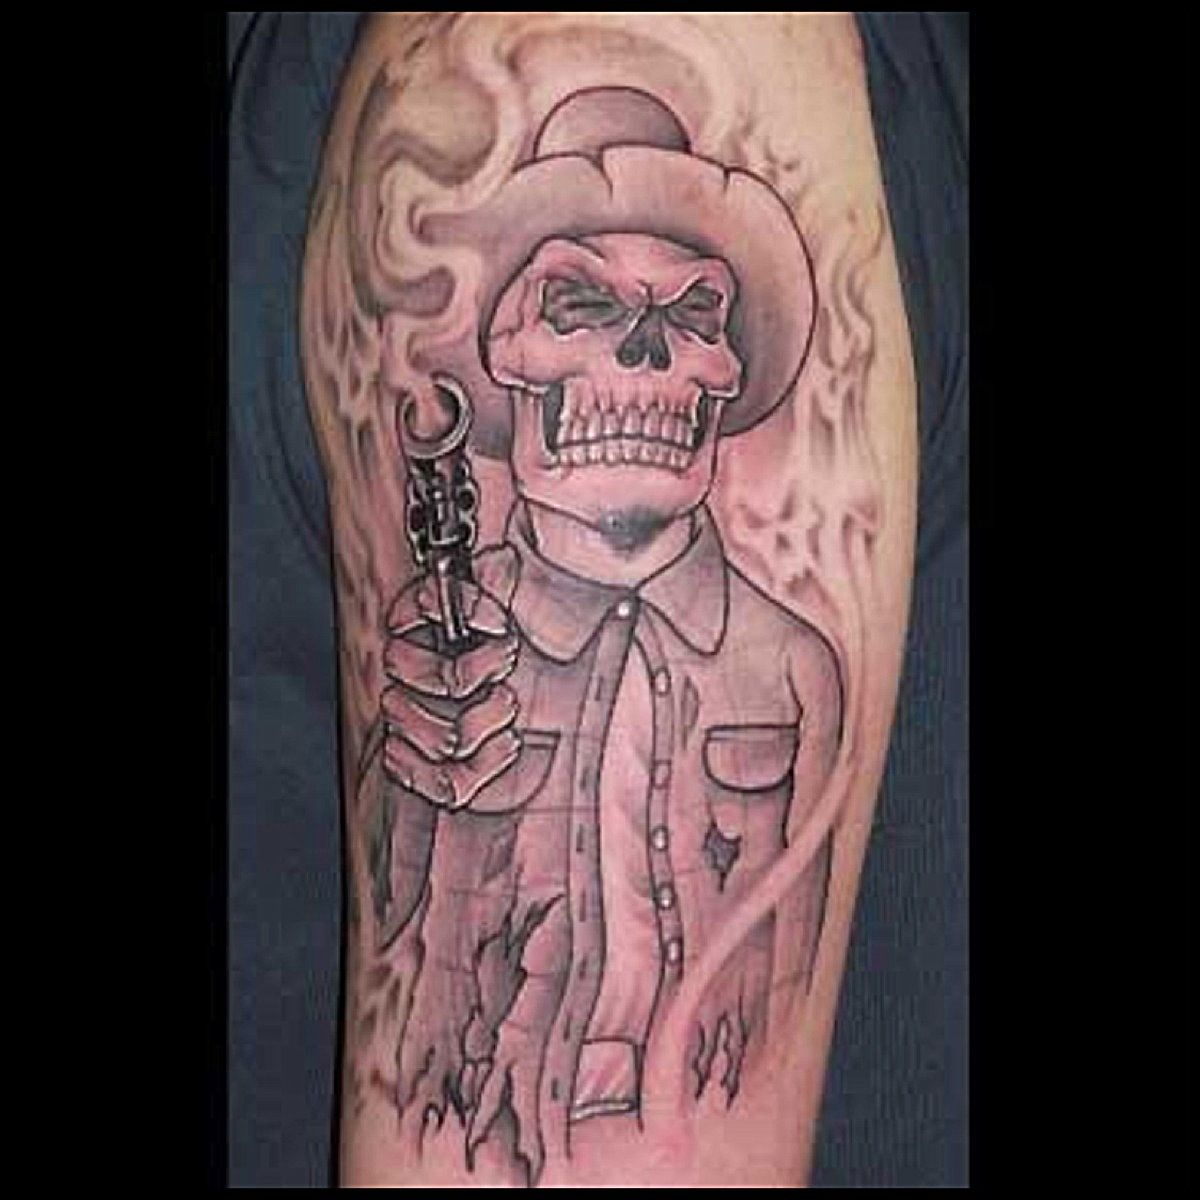 Chicano style Black and grey tattoos Black, grey